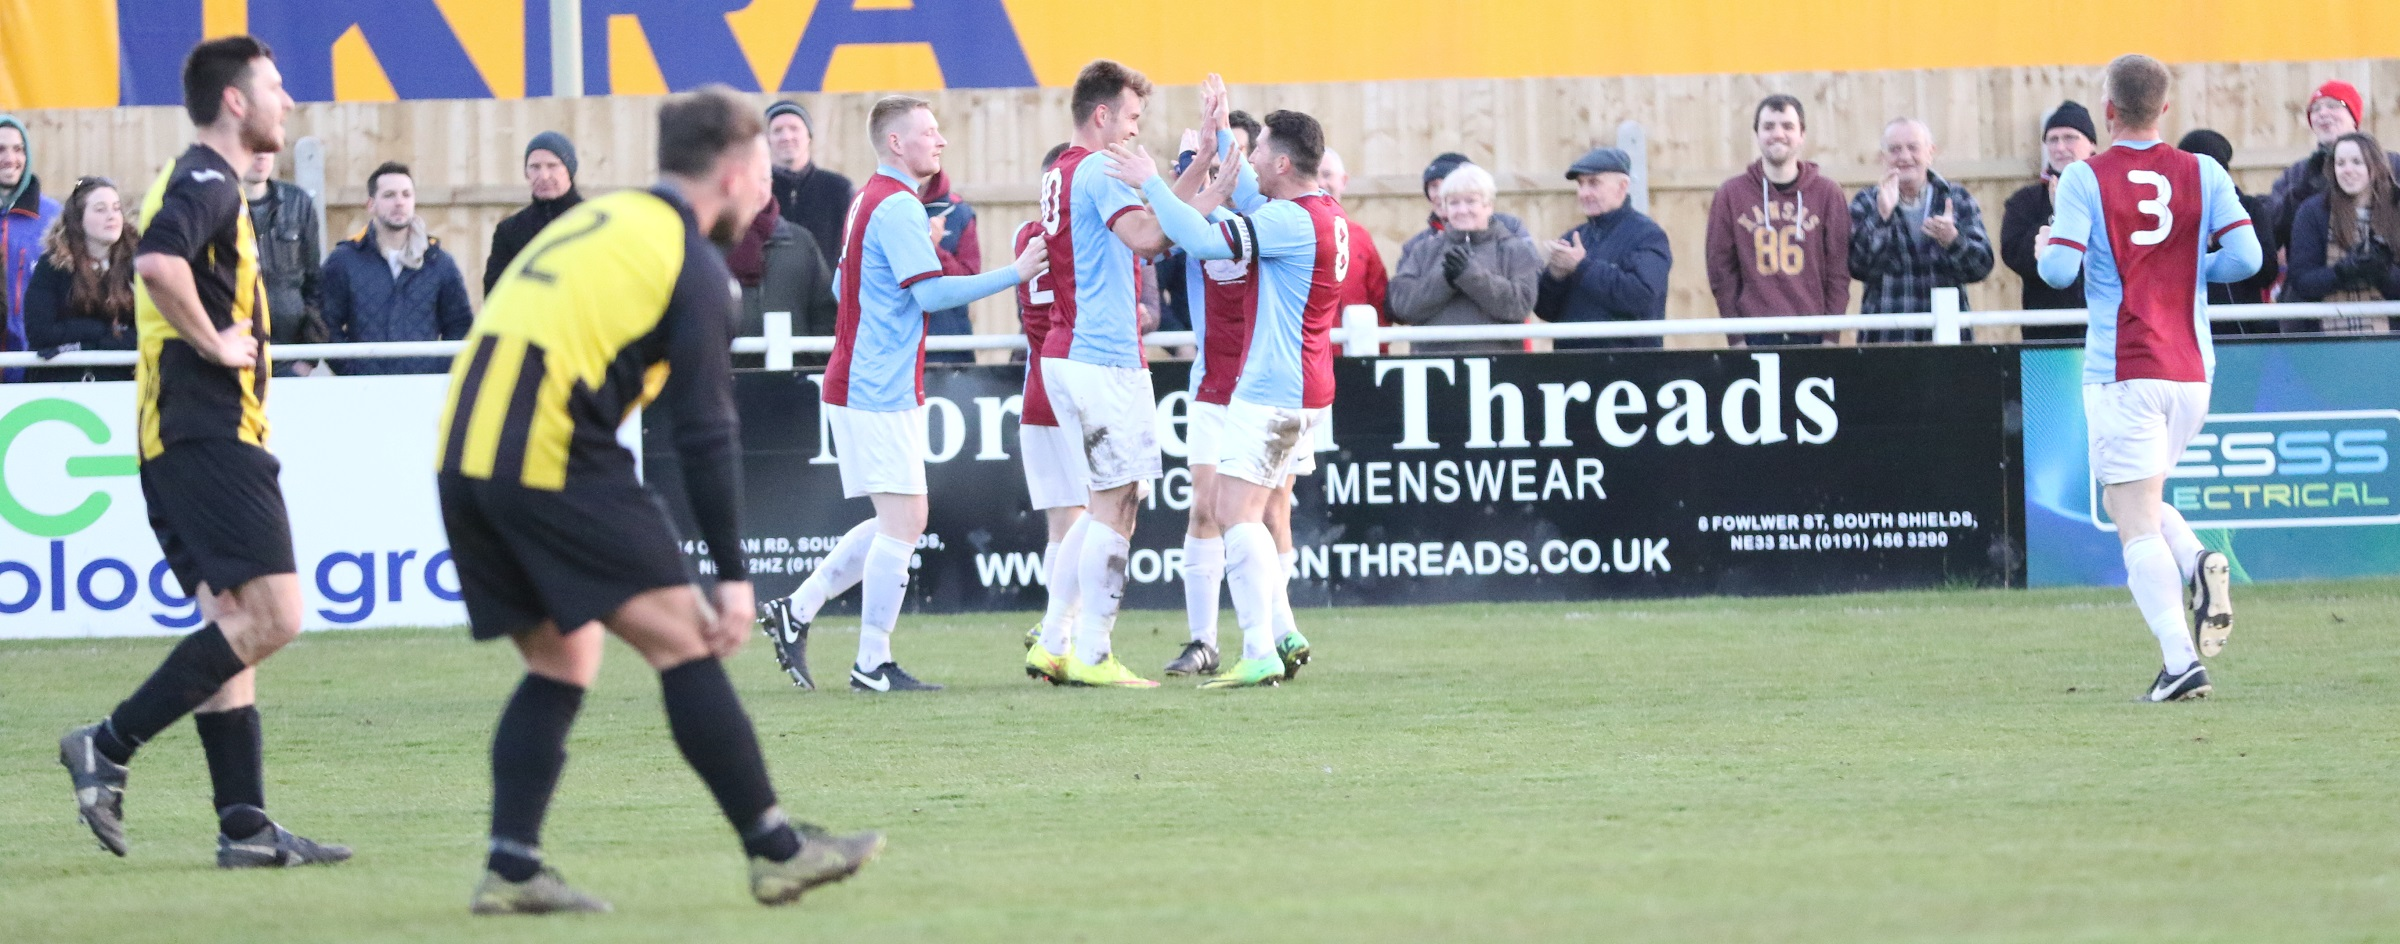 HIGHLIGHTS AND IMAGES: South Shields 2-0 Hebburn Town